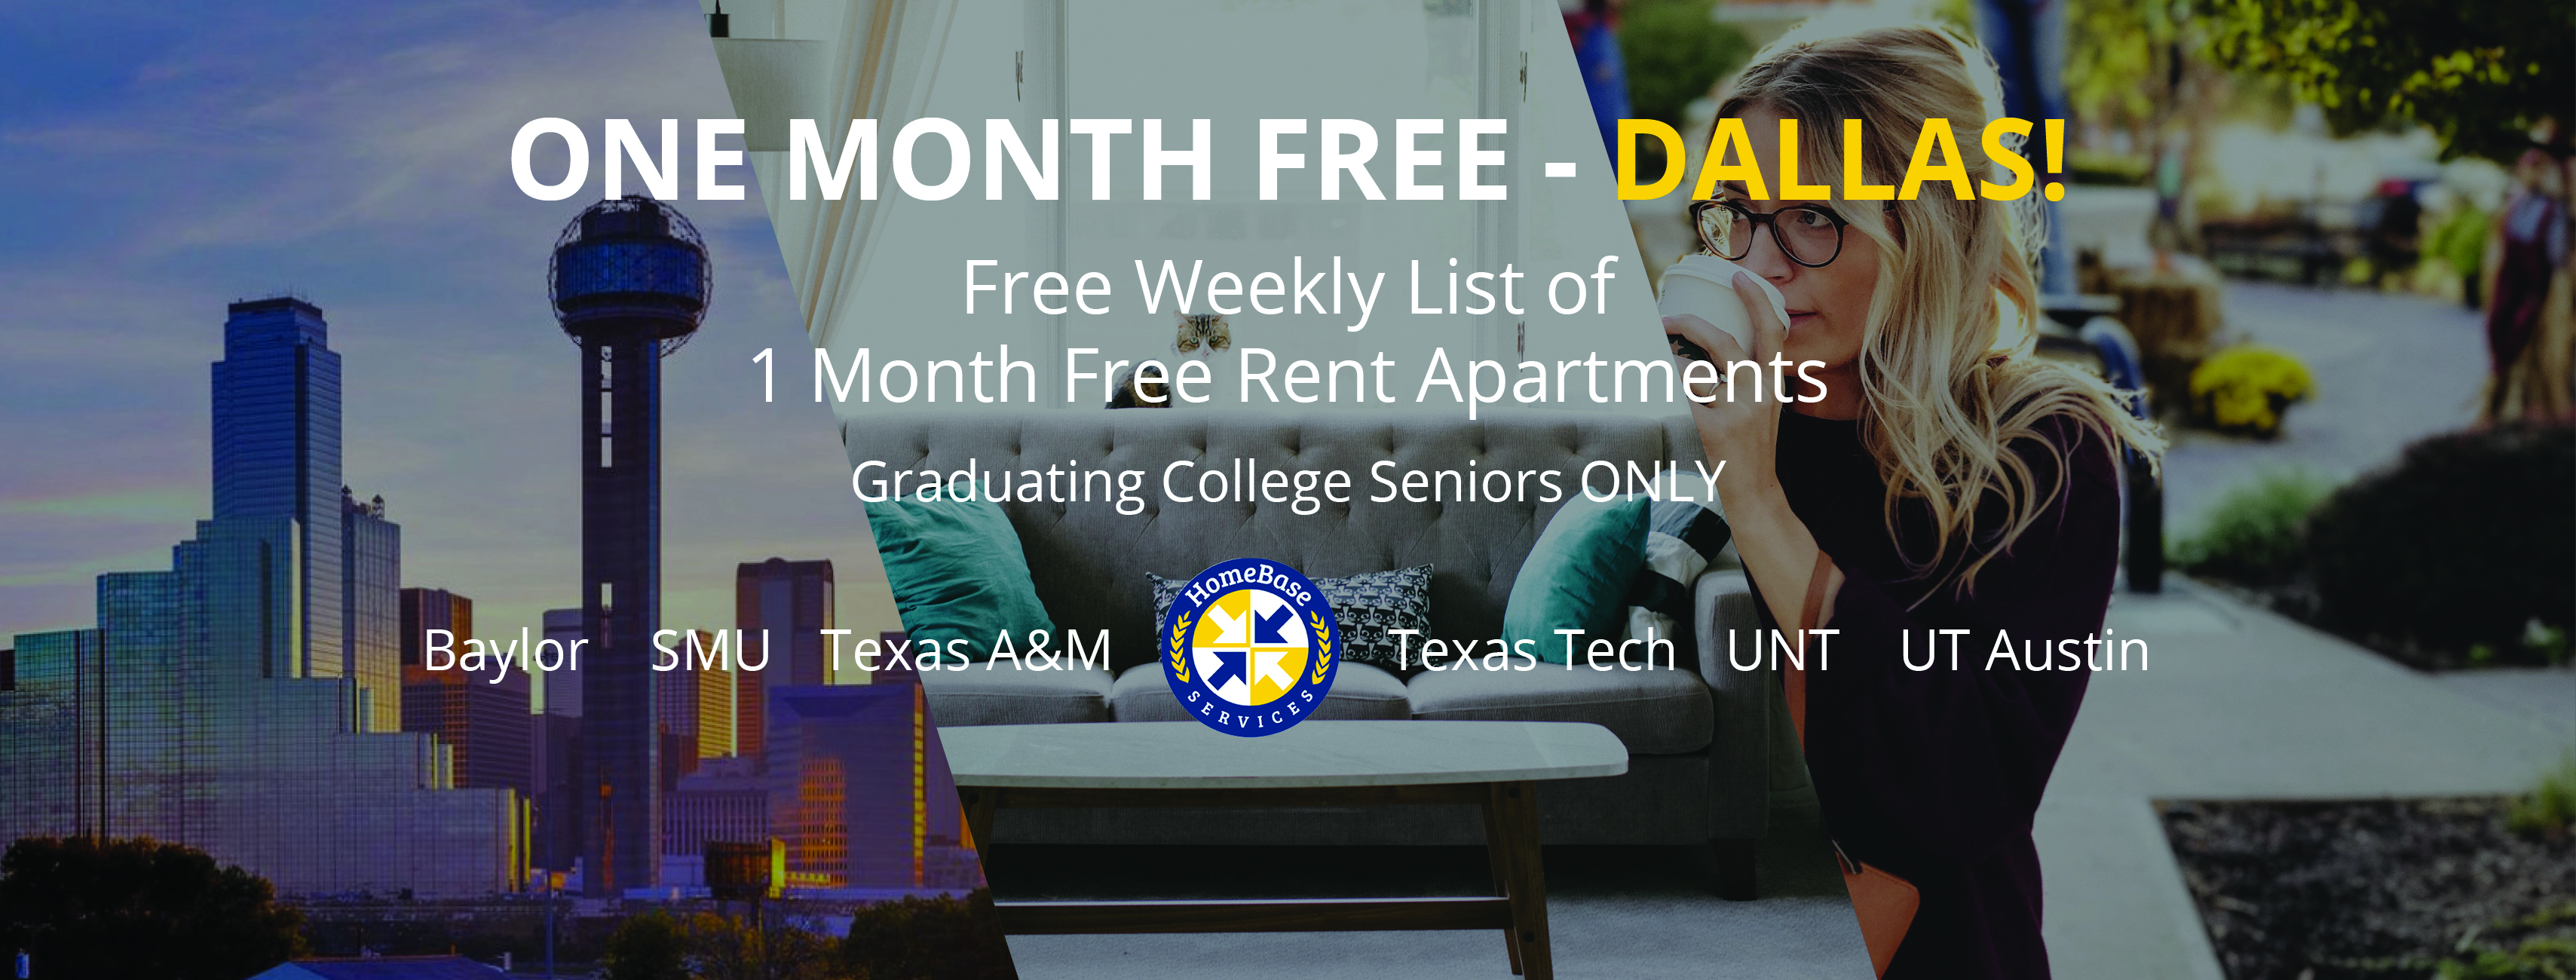 Weekly Free Rent Apartment Specials in Dallas & Houston – Feb 21 2018